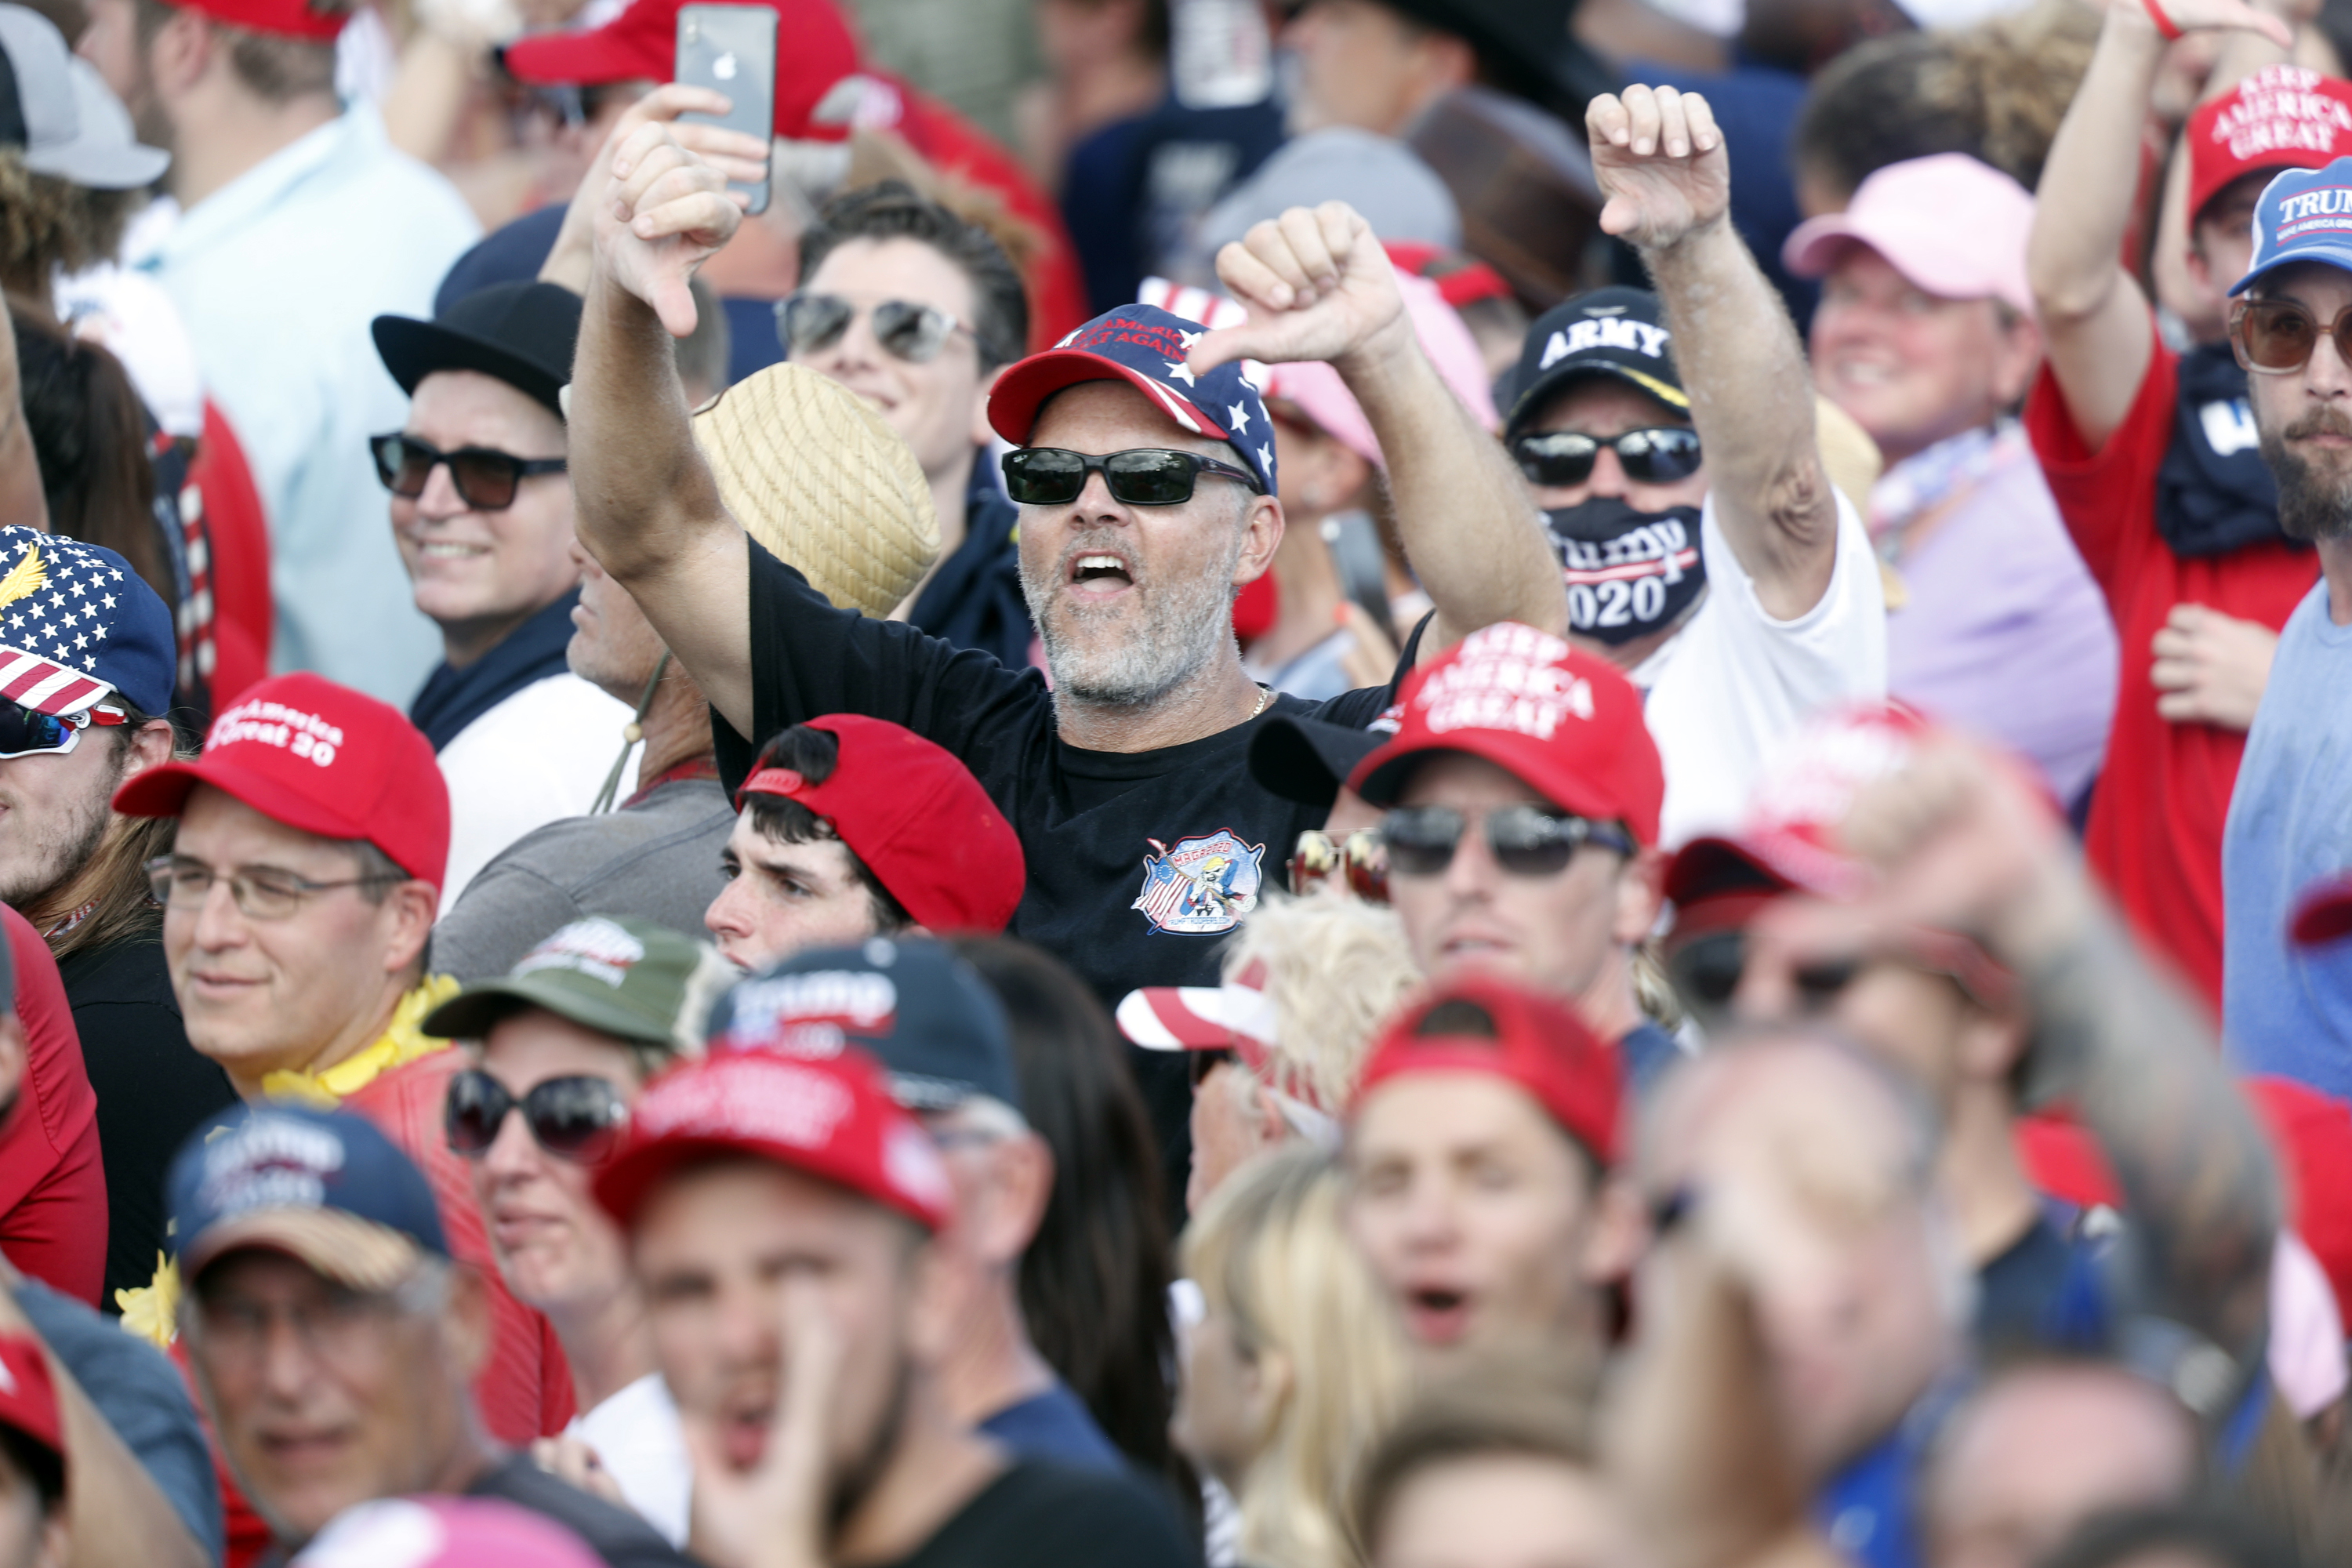 """Supporters of President Donald Trump show their disdain shouting """"CNN sucks"""" during his campaign speech just four days before Election Day outside of Raymond James Stadium on October 29, 2020 in Tampa, Florida. (Octavio Jones/Getty Images)"""